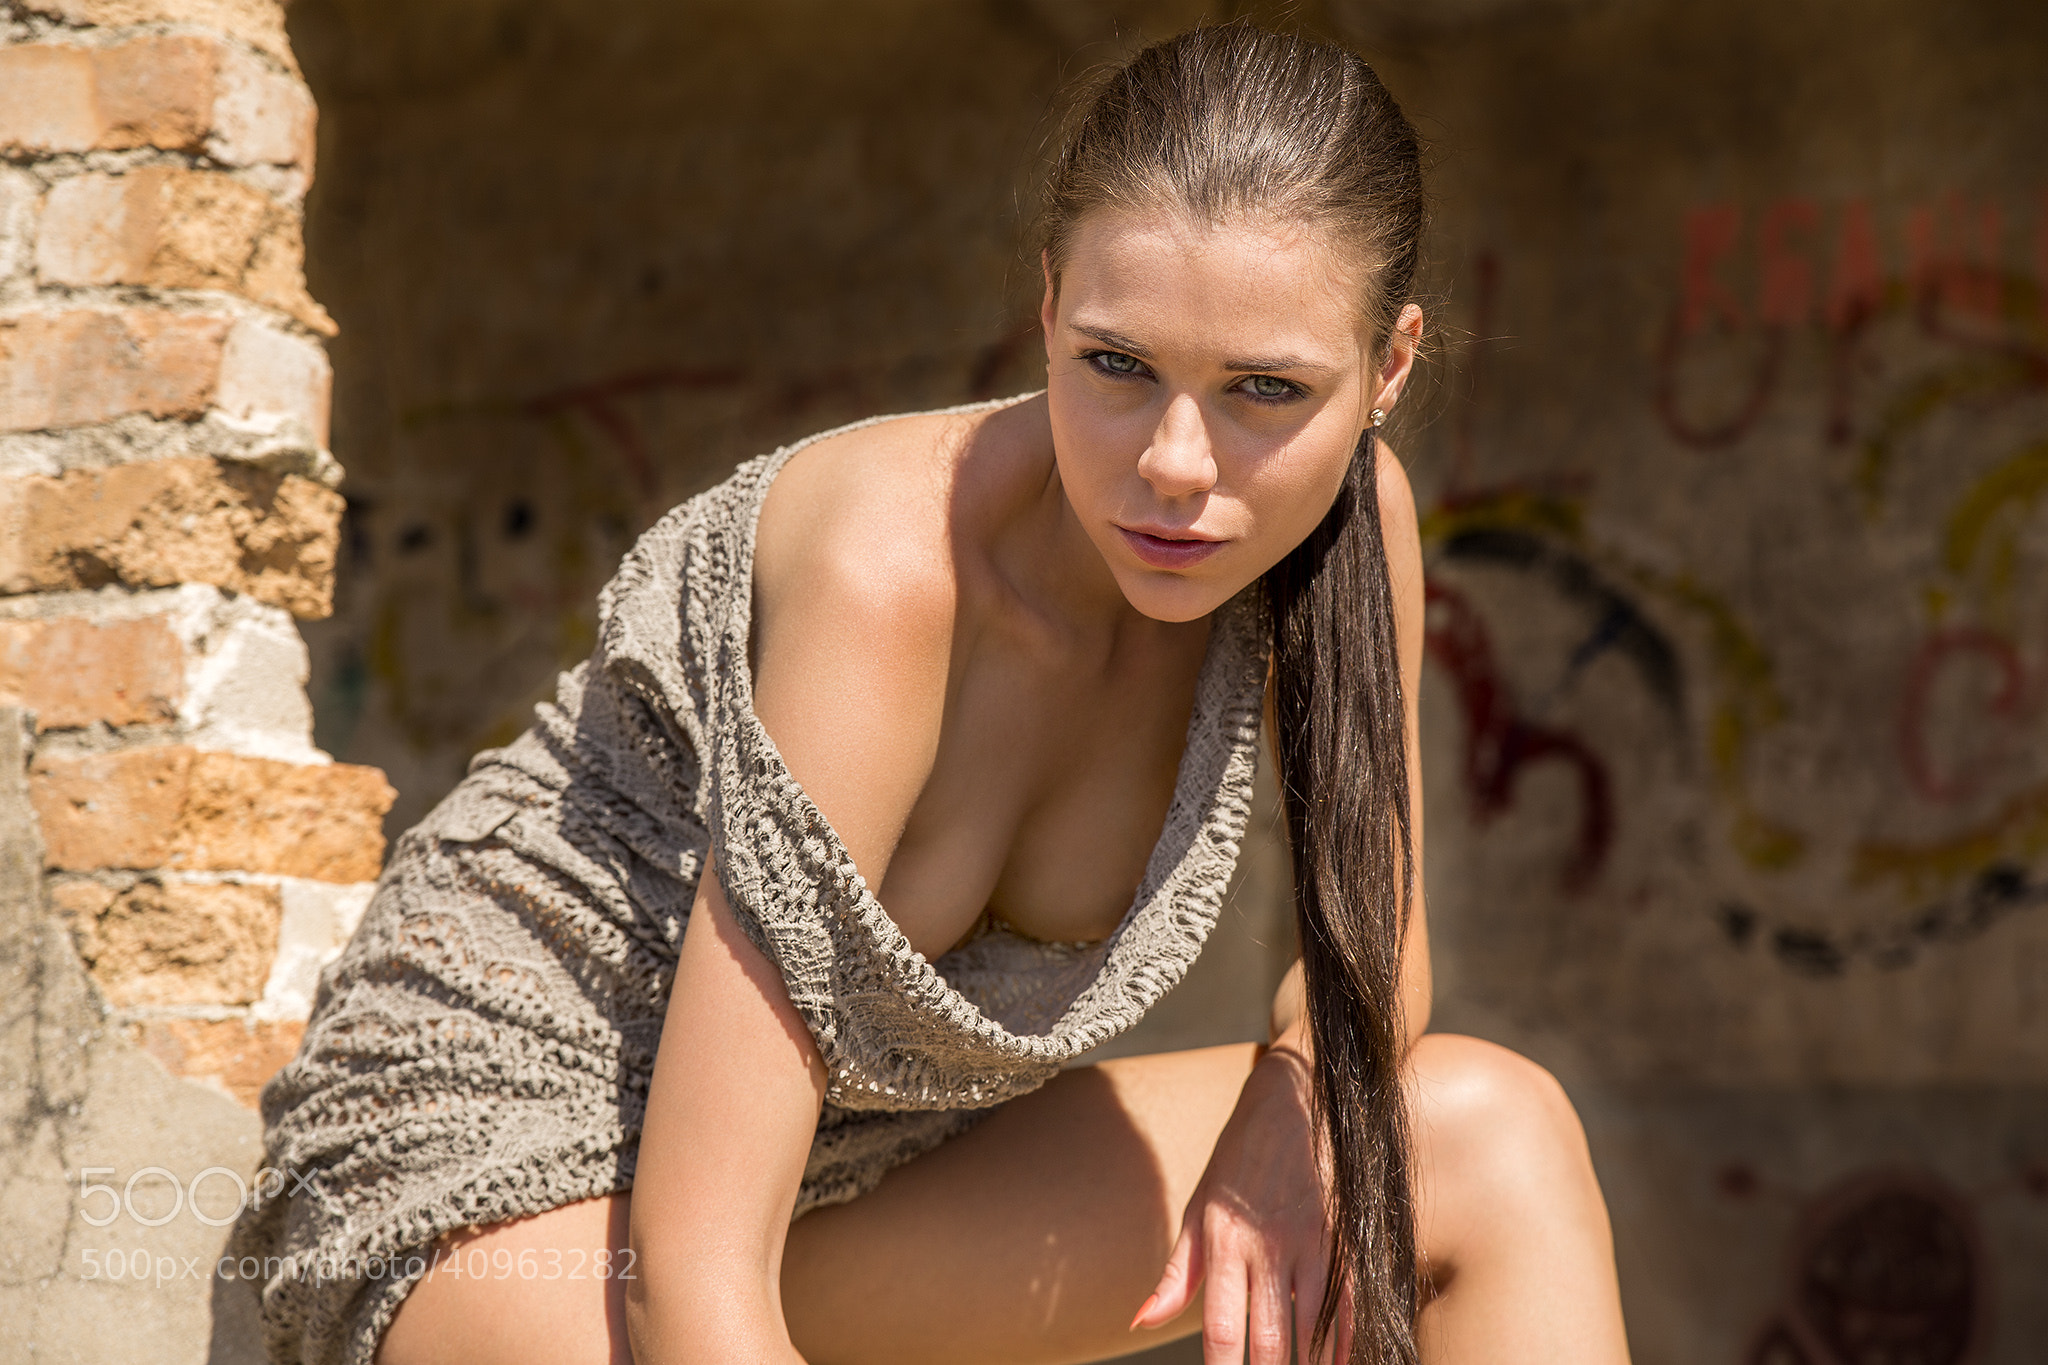 Photograph Cleavage by Guenter Stoehr on 500px